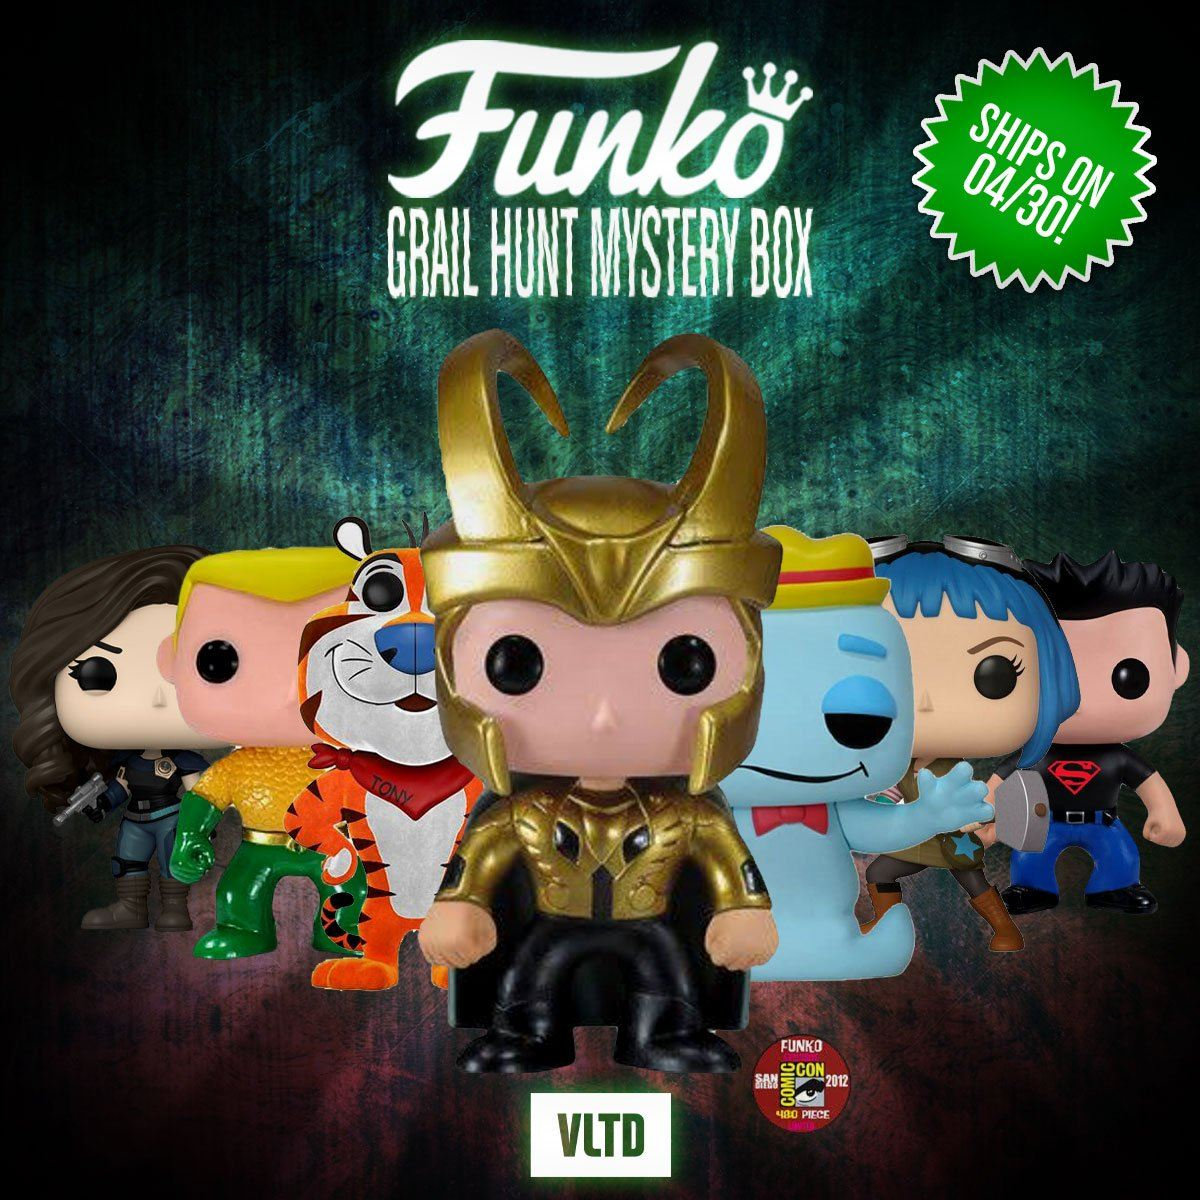 FUNKO POP! MYSTERY BOX: Prizes Can Include SDCC 2012 Exclusive Metallic Loki (LE480), Flocked Tony the Tiger (LE2000), OG Boo Berry, Aquaman (DC Universe), Superboy, ECCC Ramona Flowers & more! Mystery Box VLTD